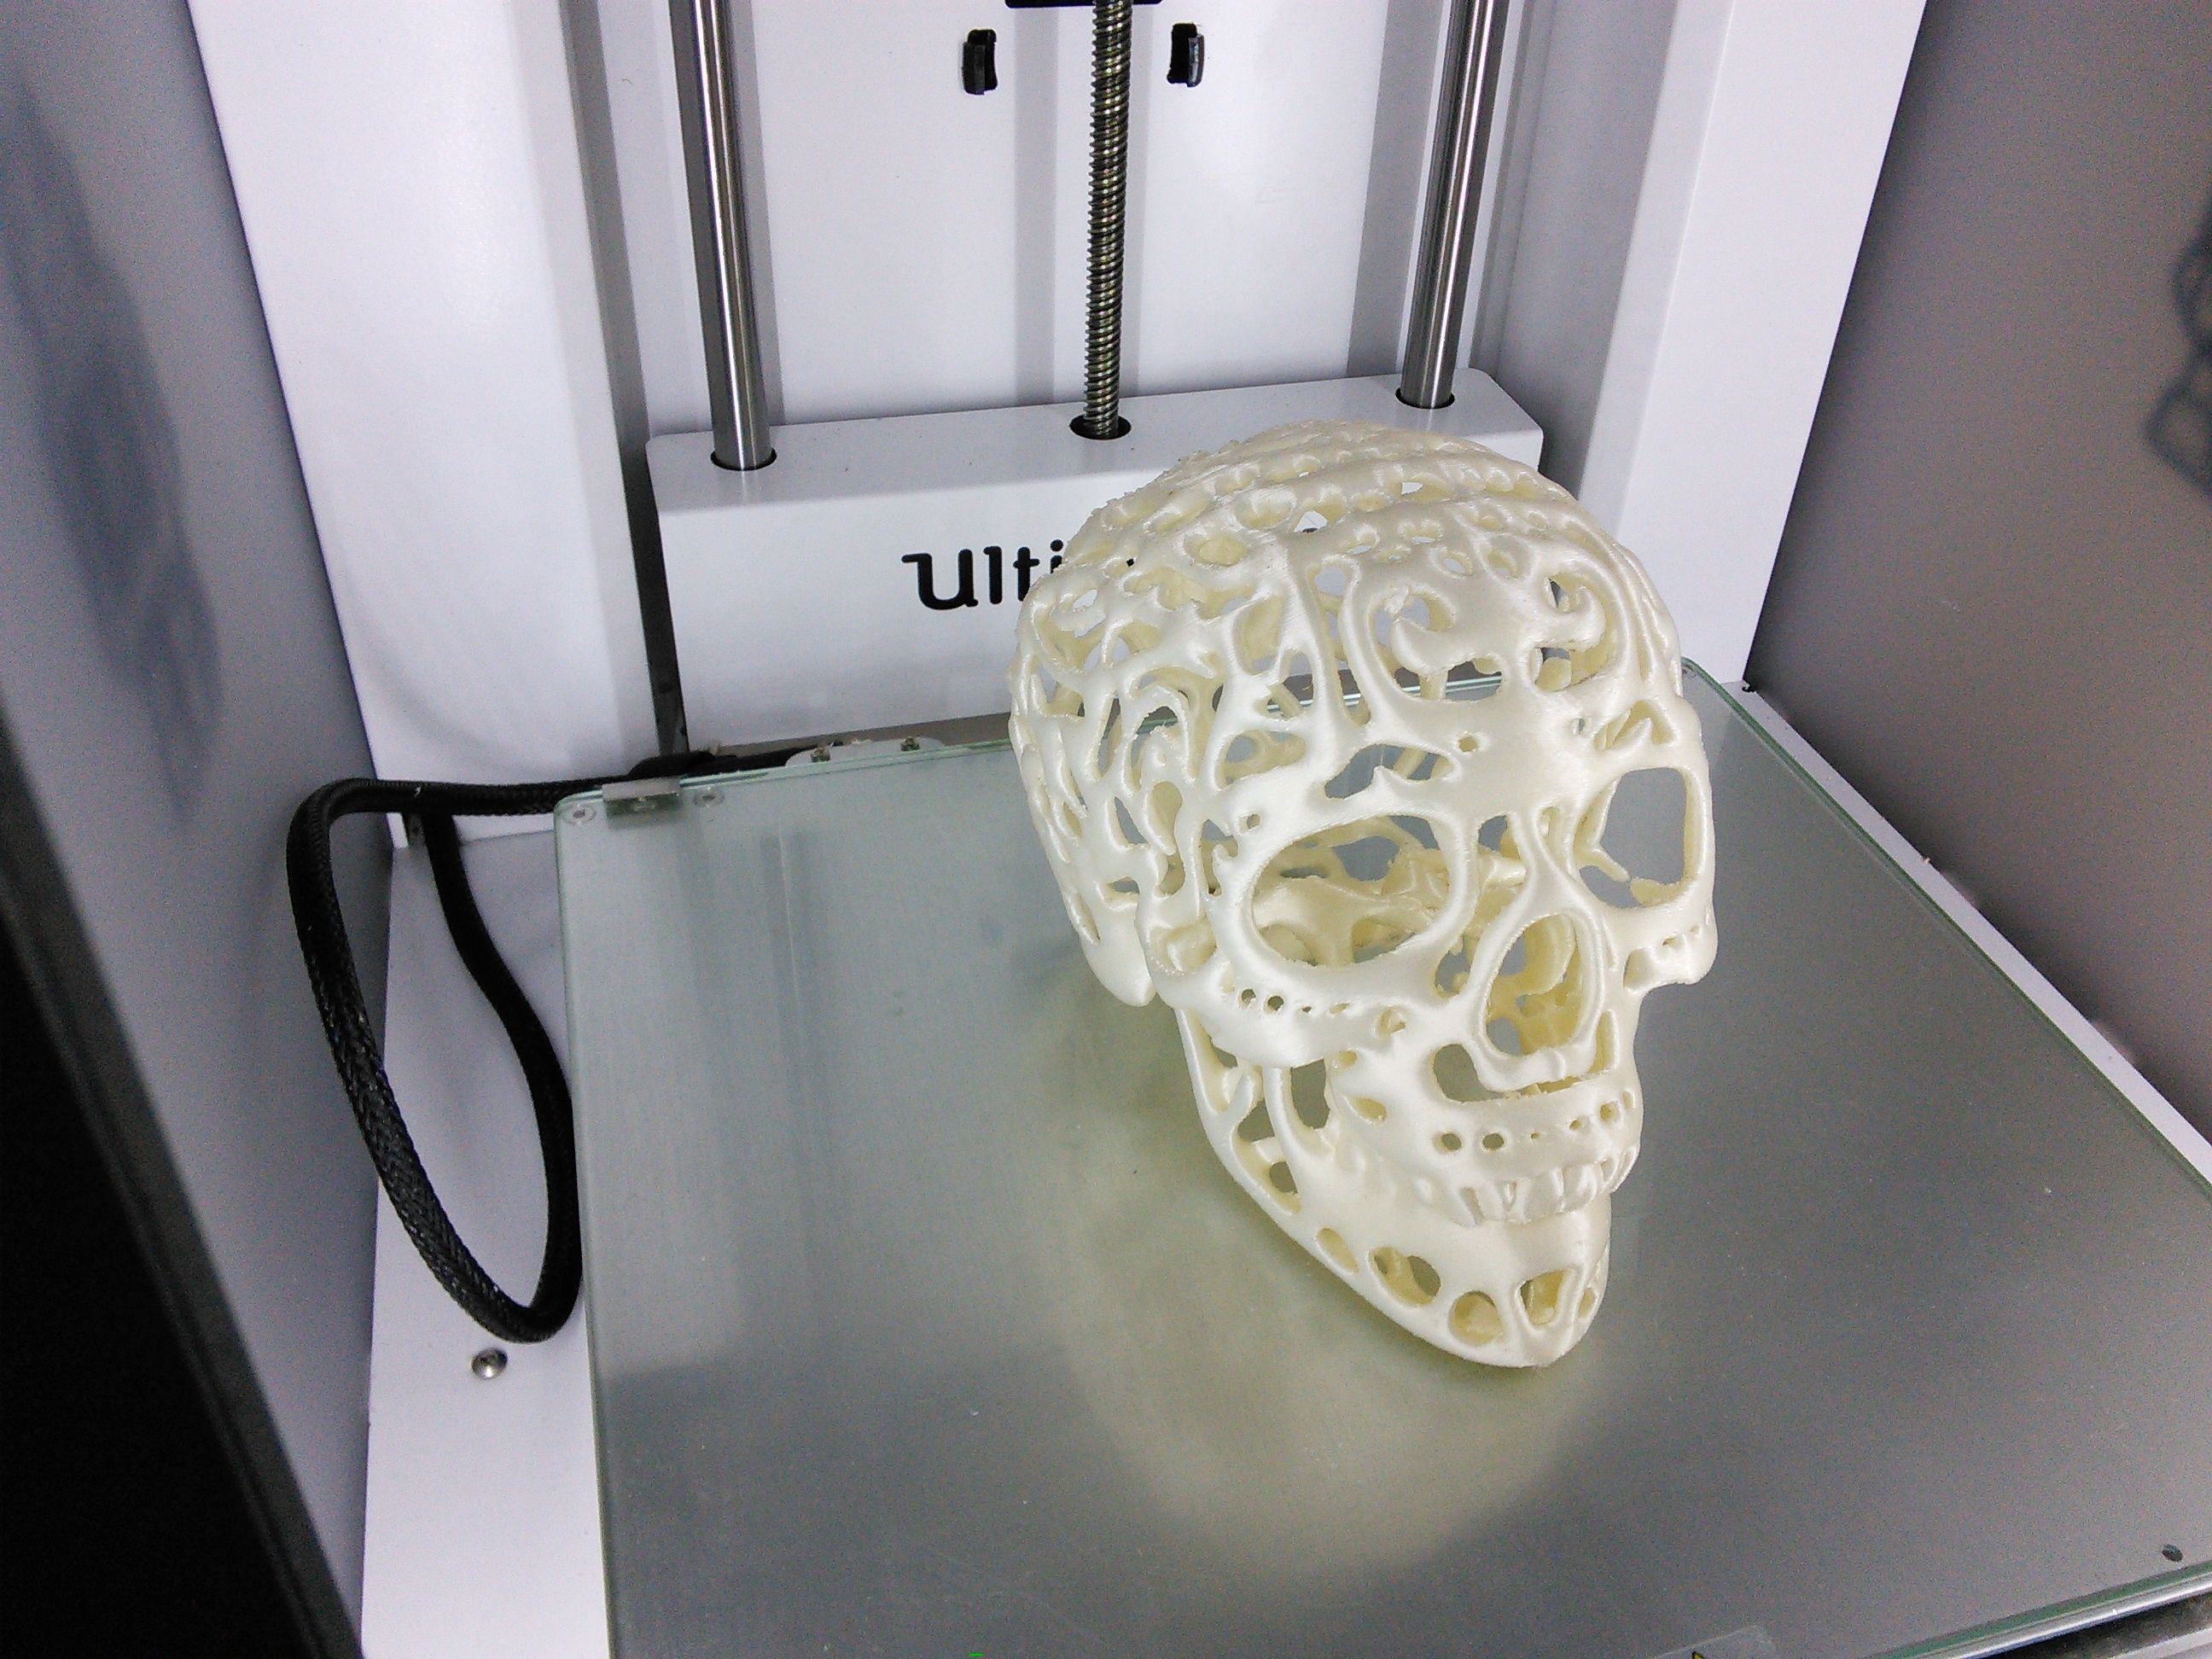 3D Printed Filigree Cranium by Dizingof on Ultimaker2 002